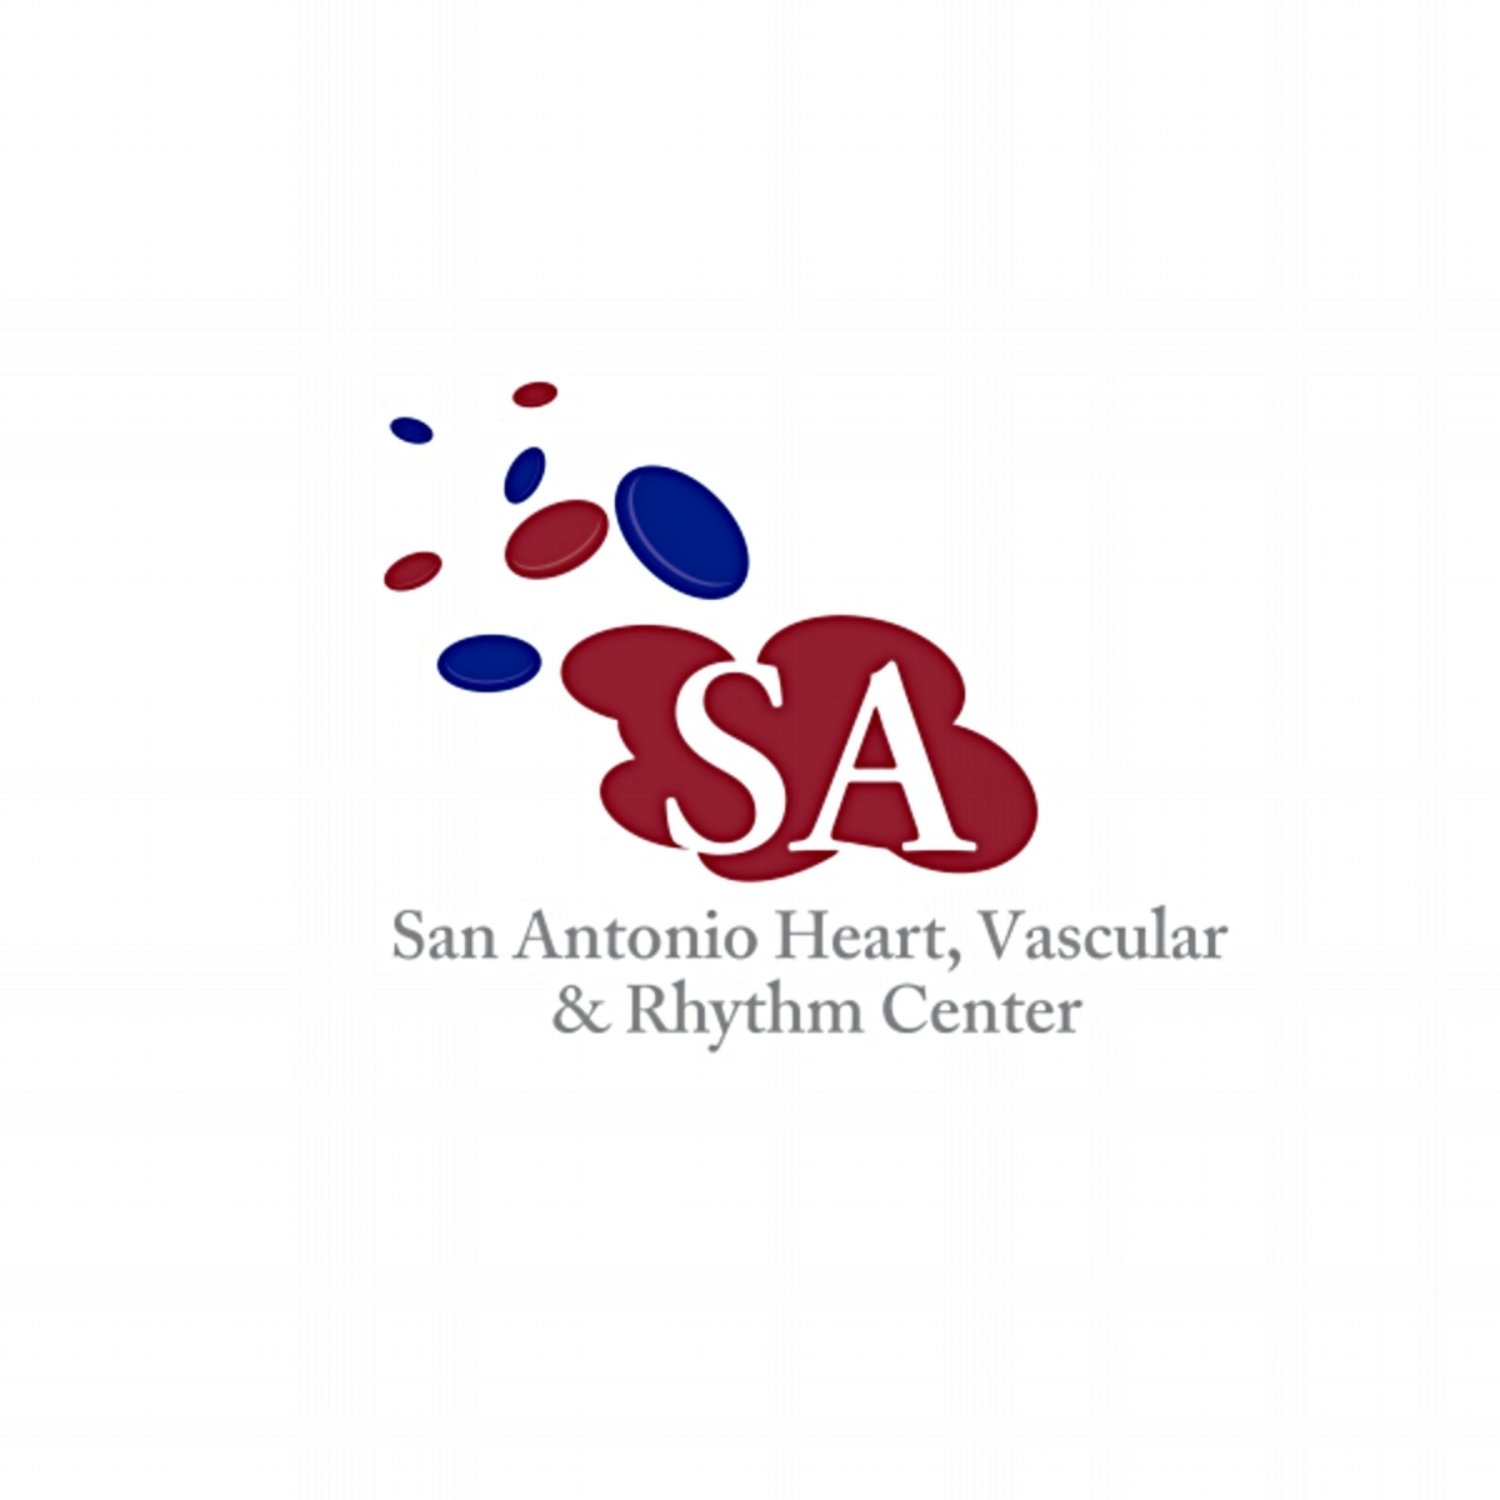 San Antonio Heart, Vascular & Rhythm Center